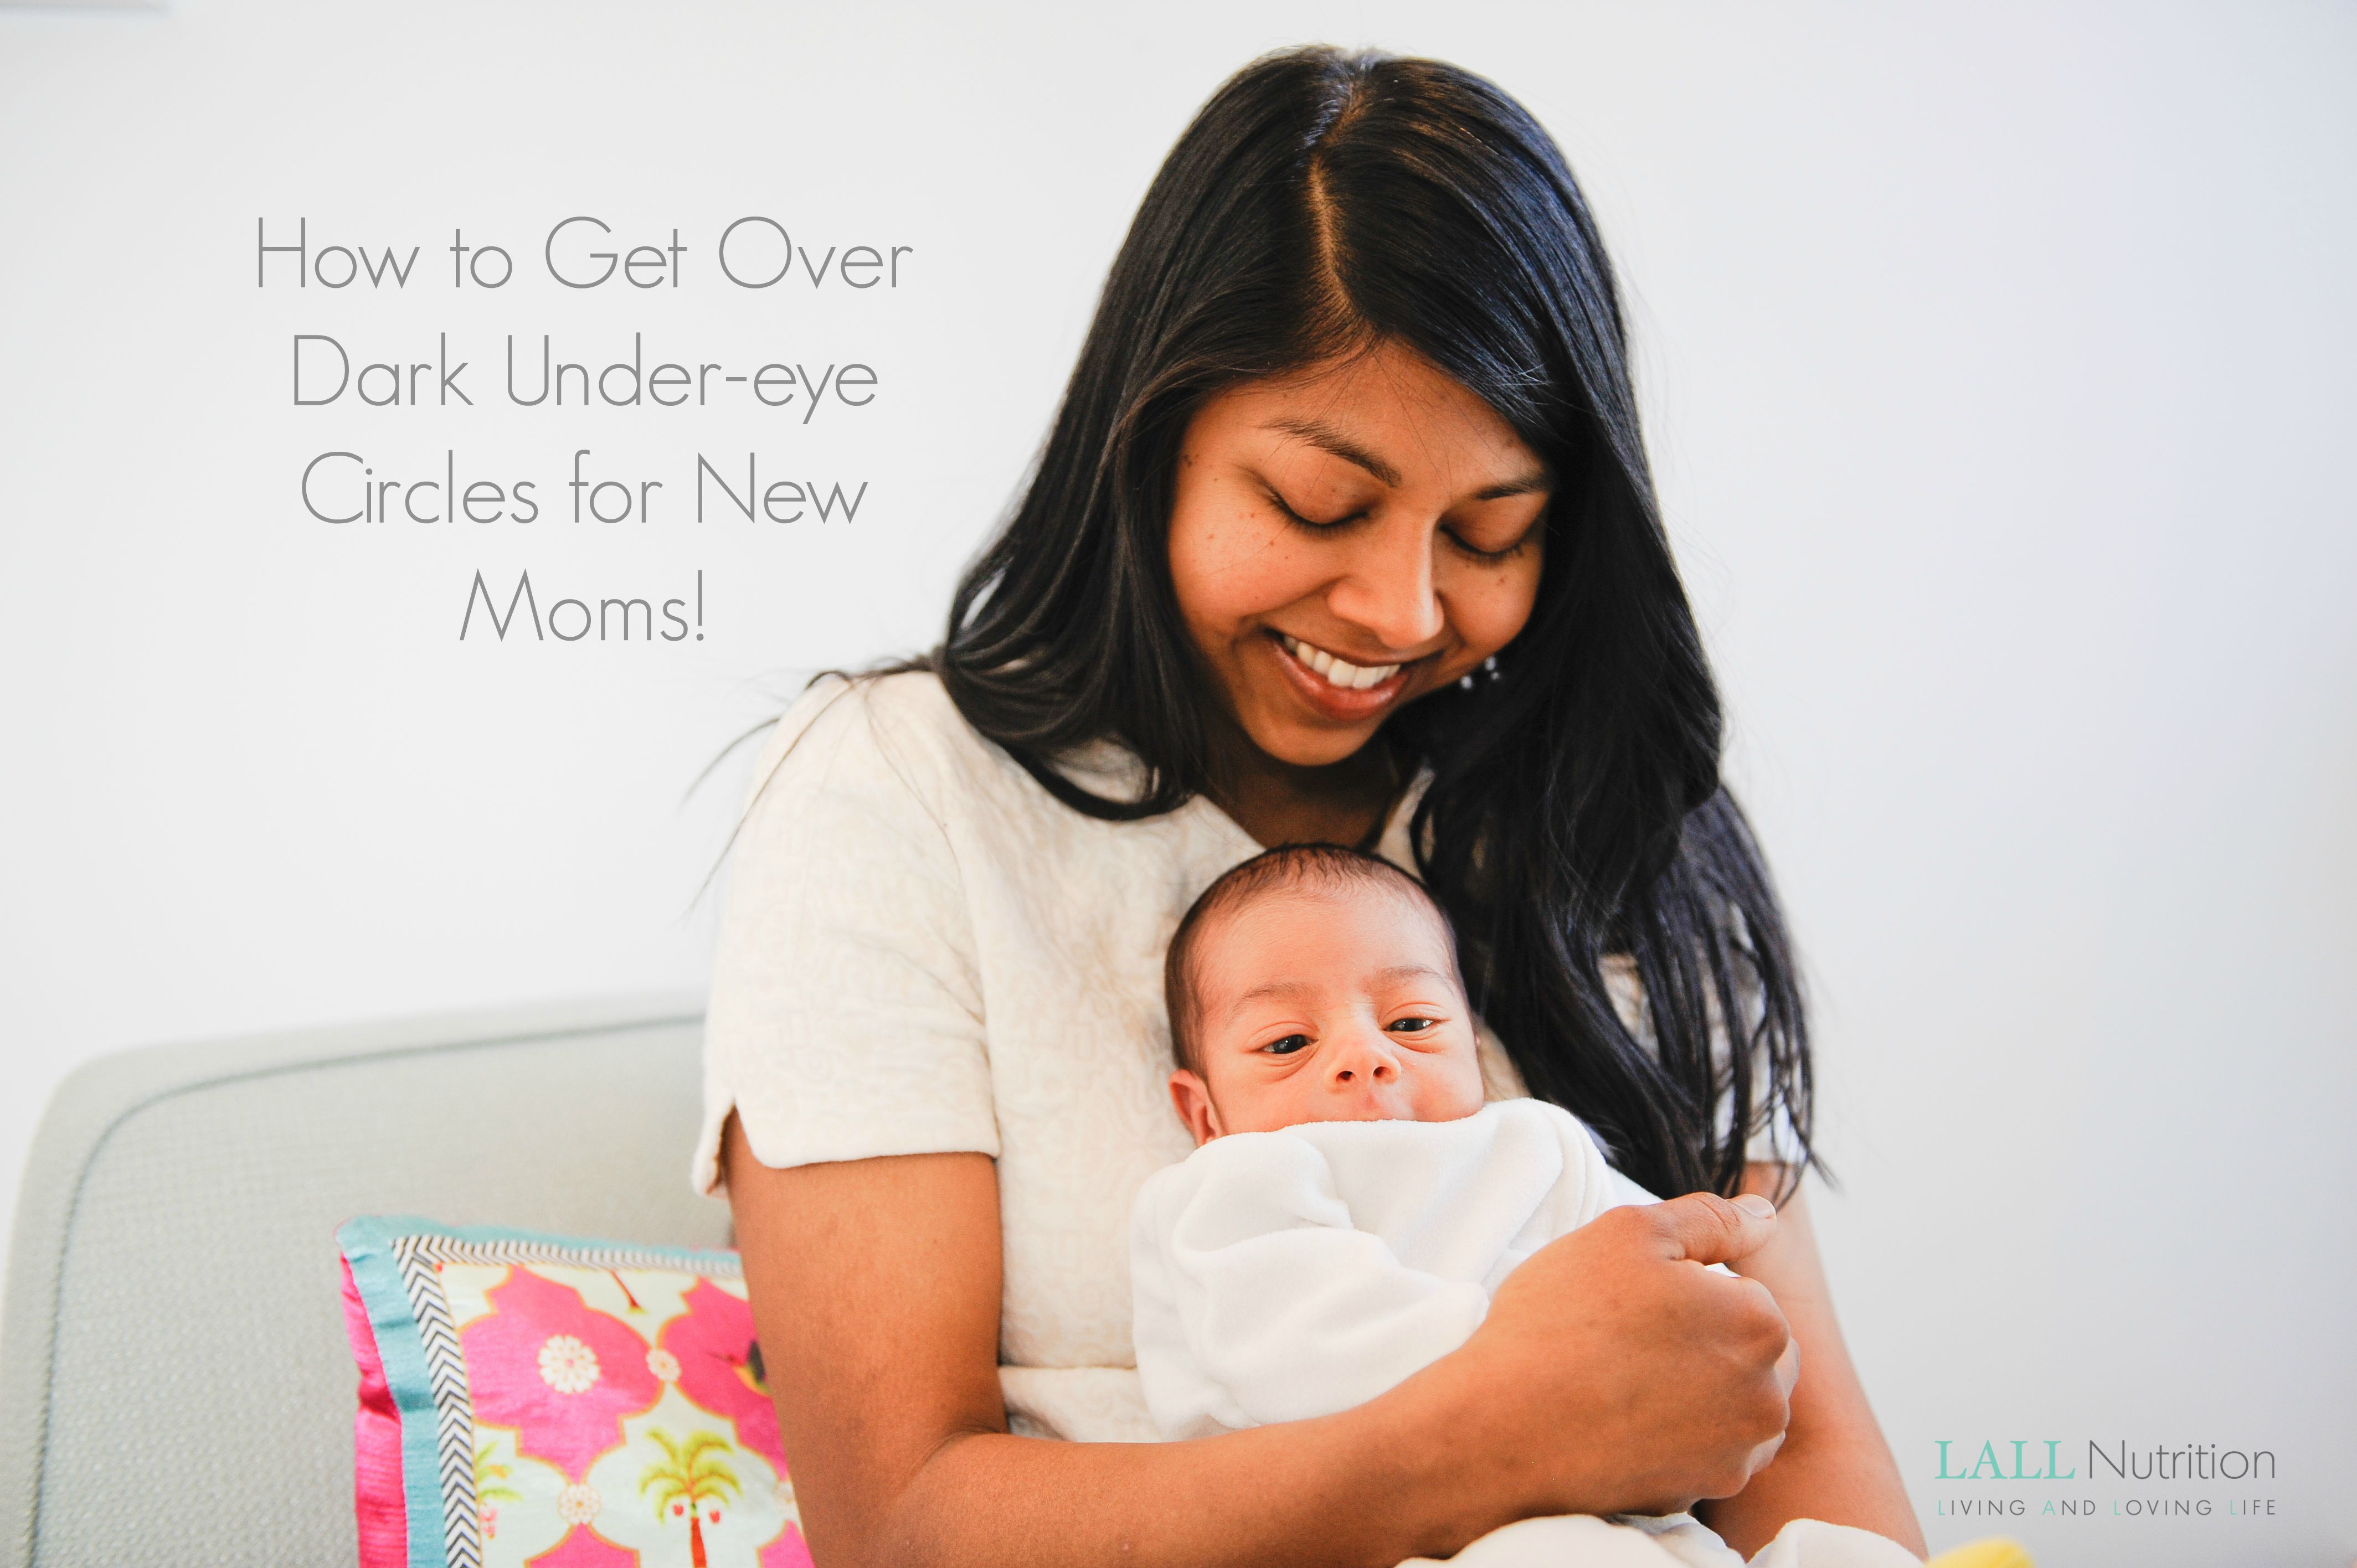 How to to Get Over Dark Under-eye Circles for New Moms!